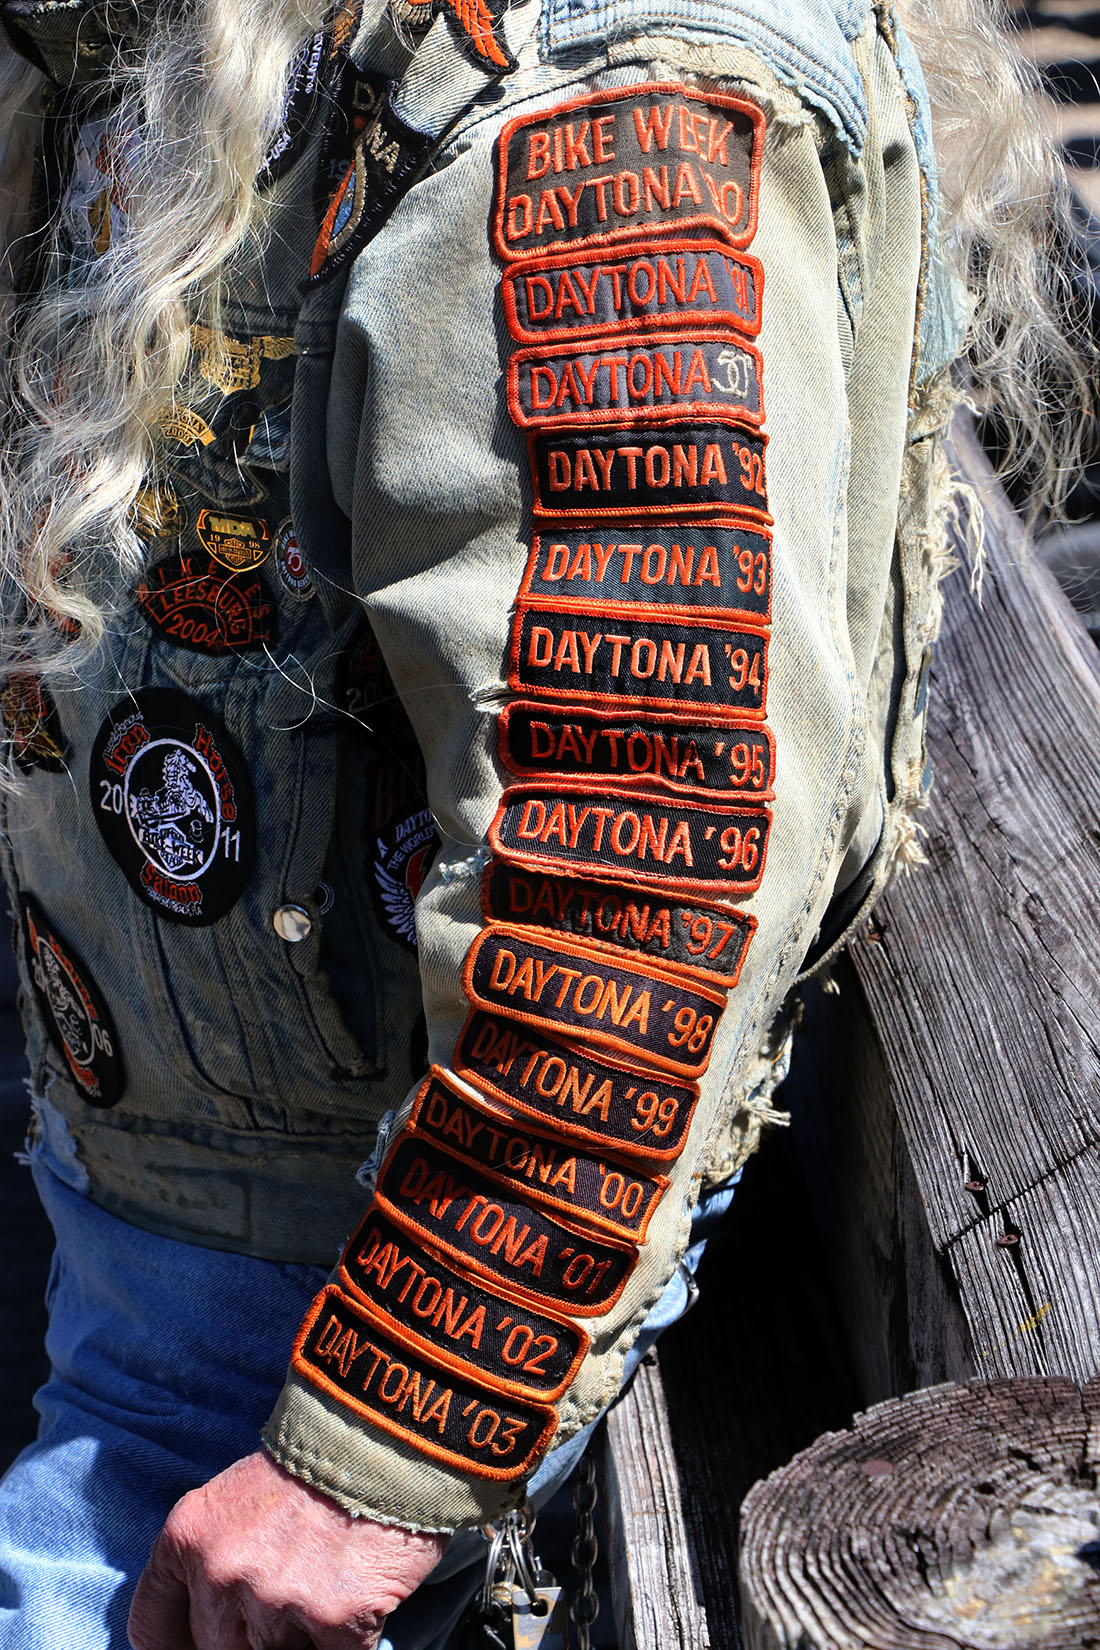 A return customer to bike week displays his patches on his shirt sleeve at the Iron Horse Saloon Thursday, March 17,  2017. [News-Journal/JIM TILLER ]